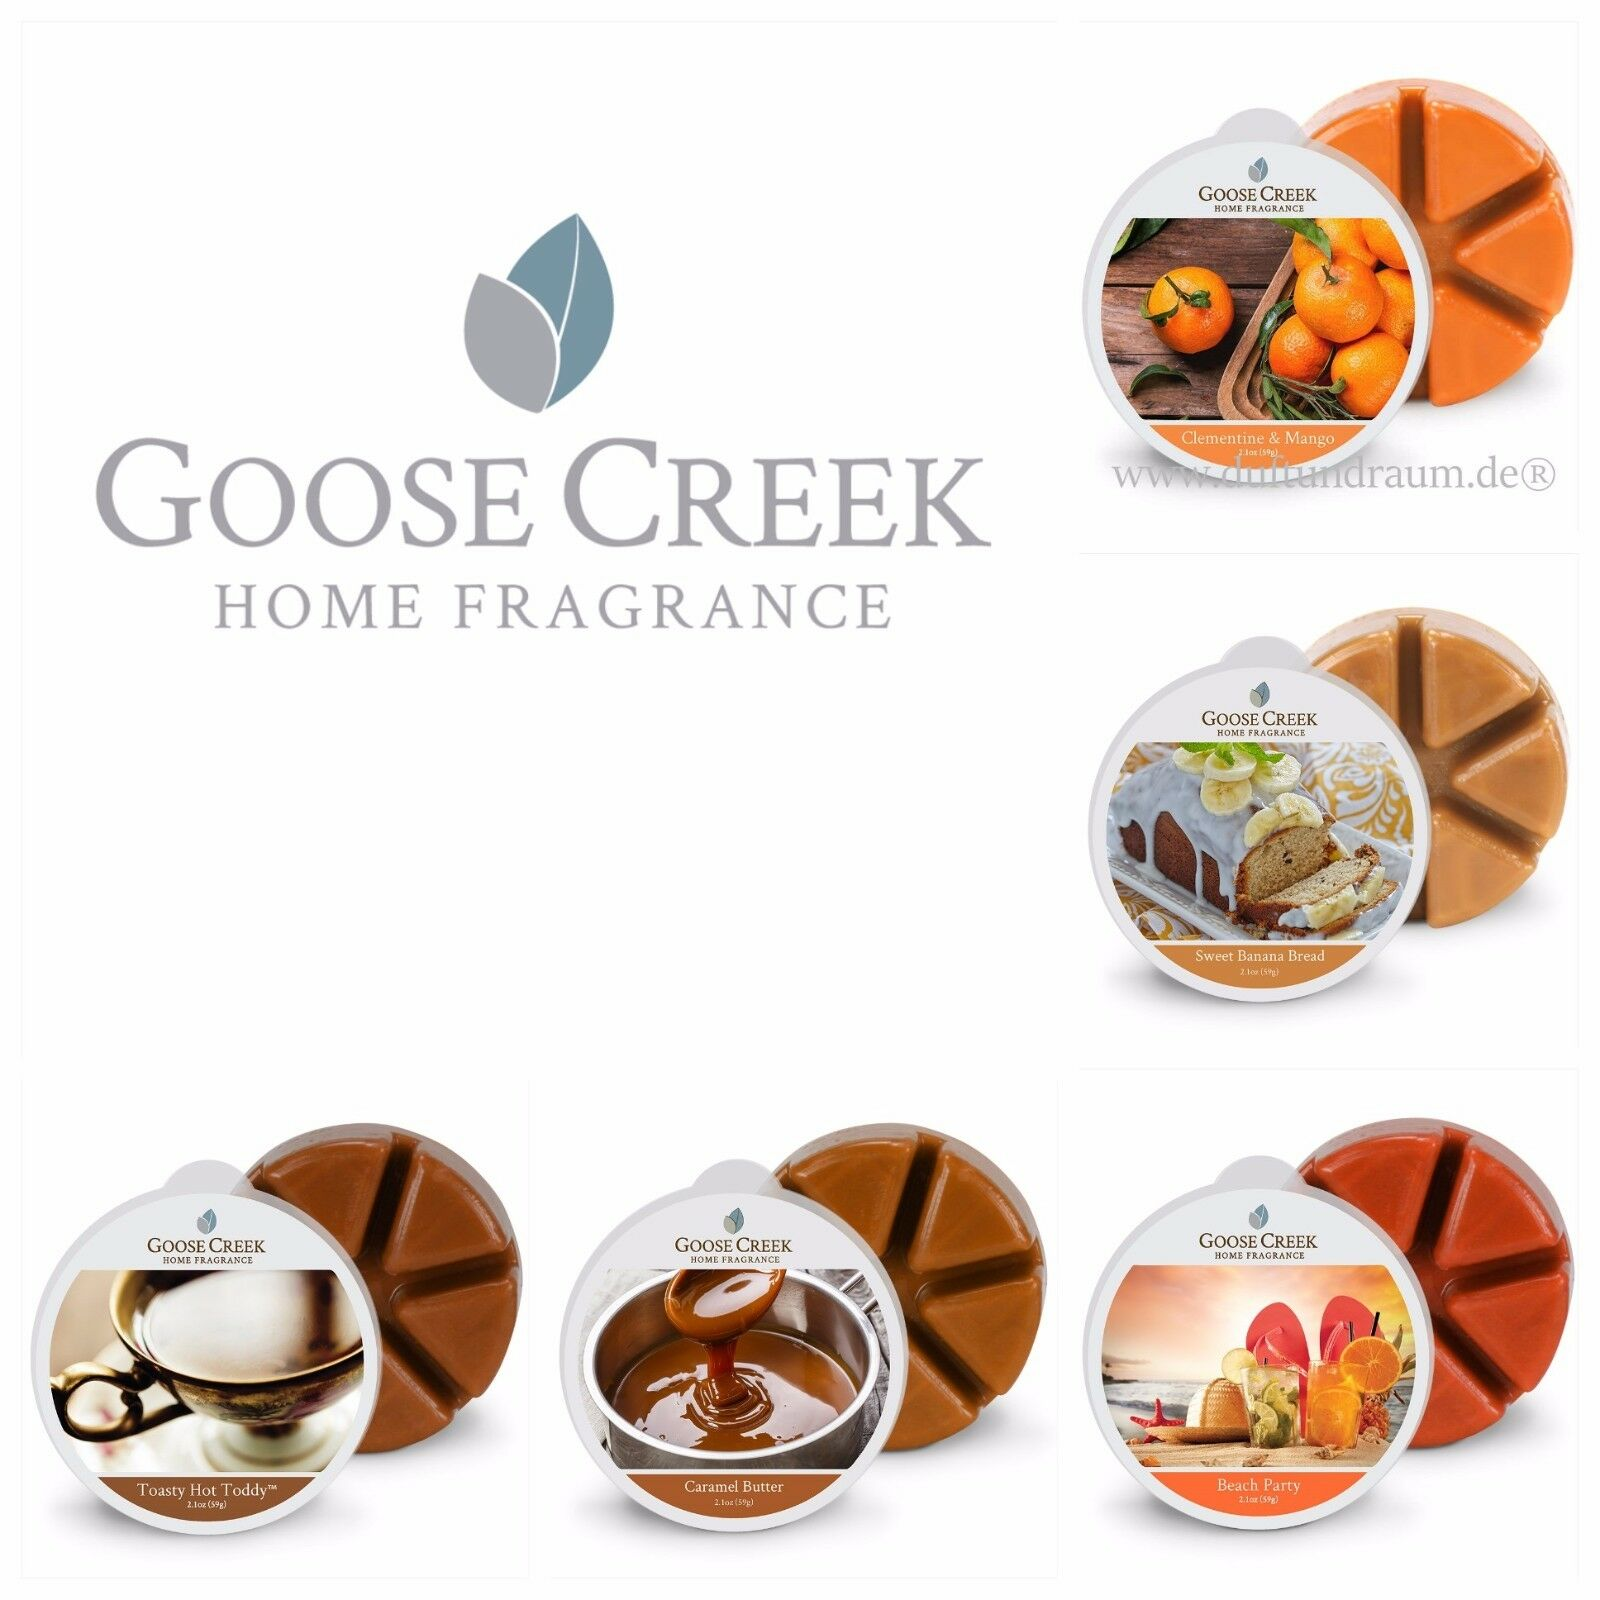 Goose Creek Wax Melts, 30 Scents to Choose From, Save 10% Wh